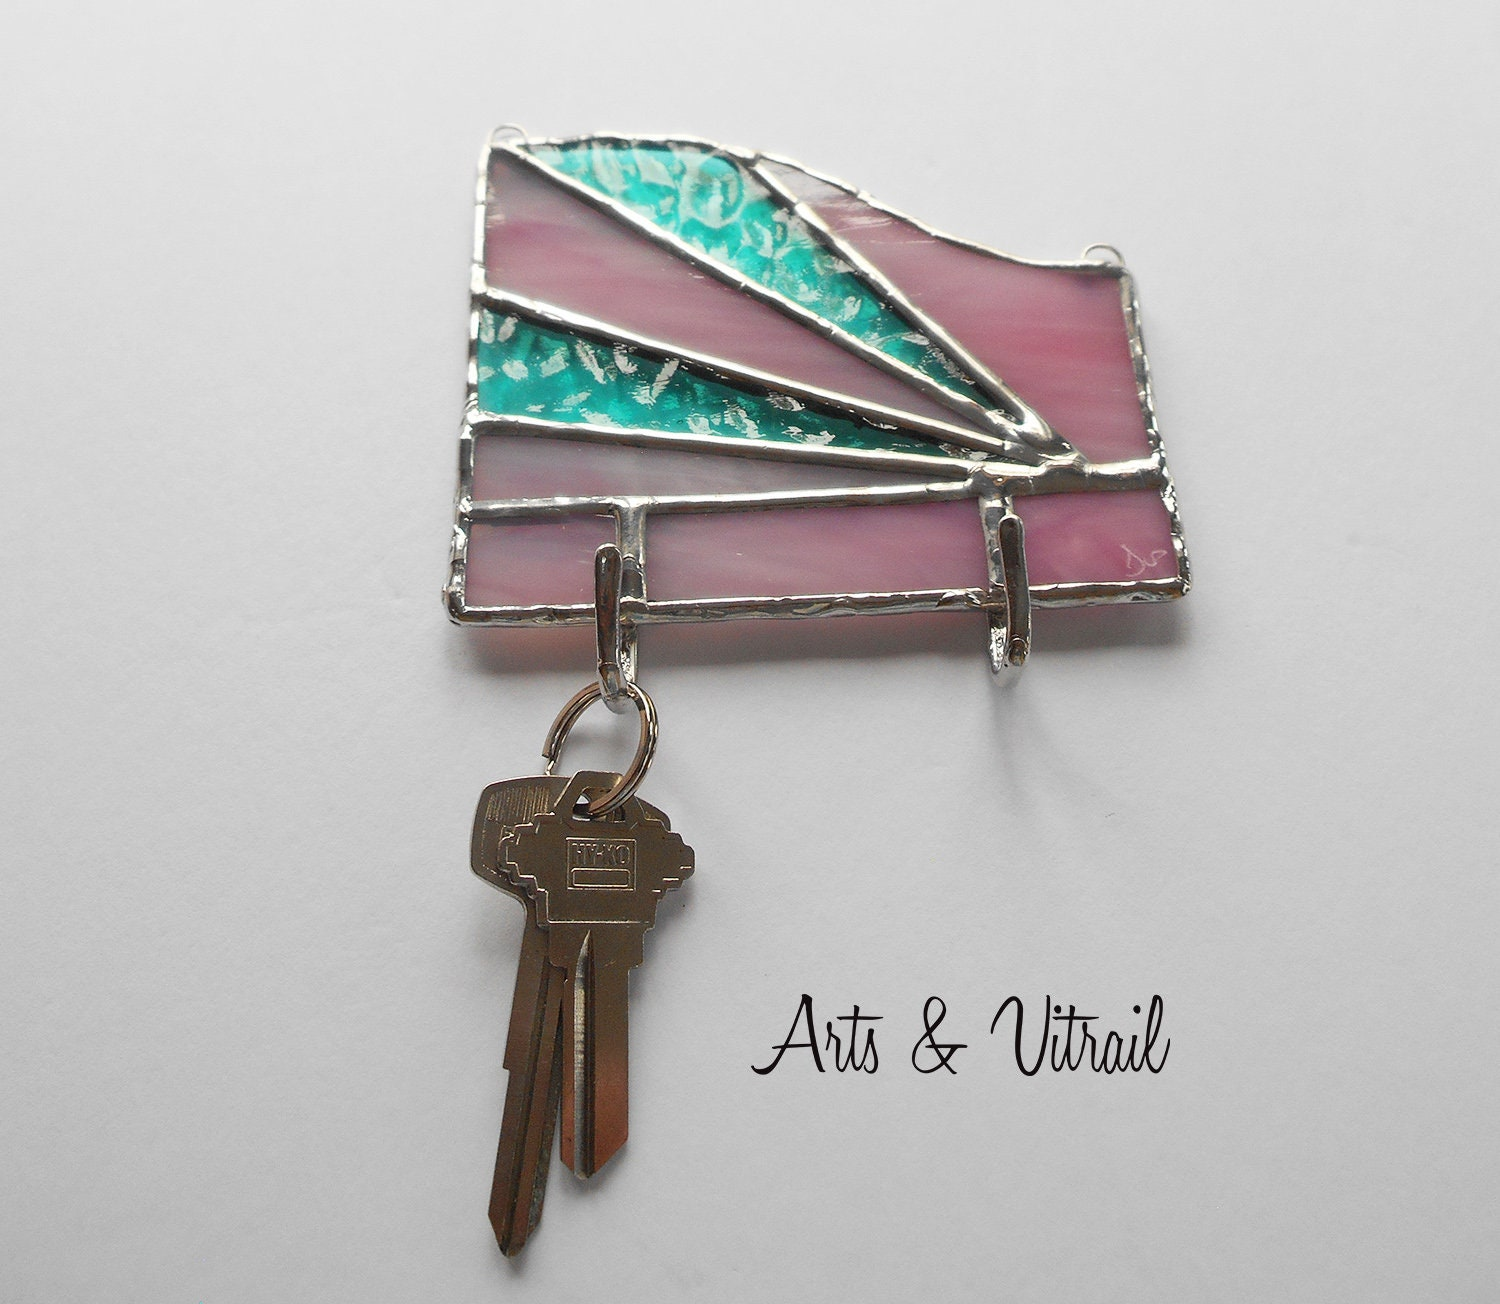 Key holder for wall pink and aqua stained glass wall key ring wall decoration mail organizer ideal gift for housewarming